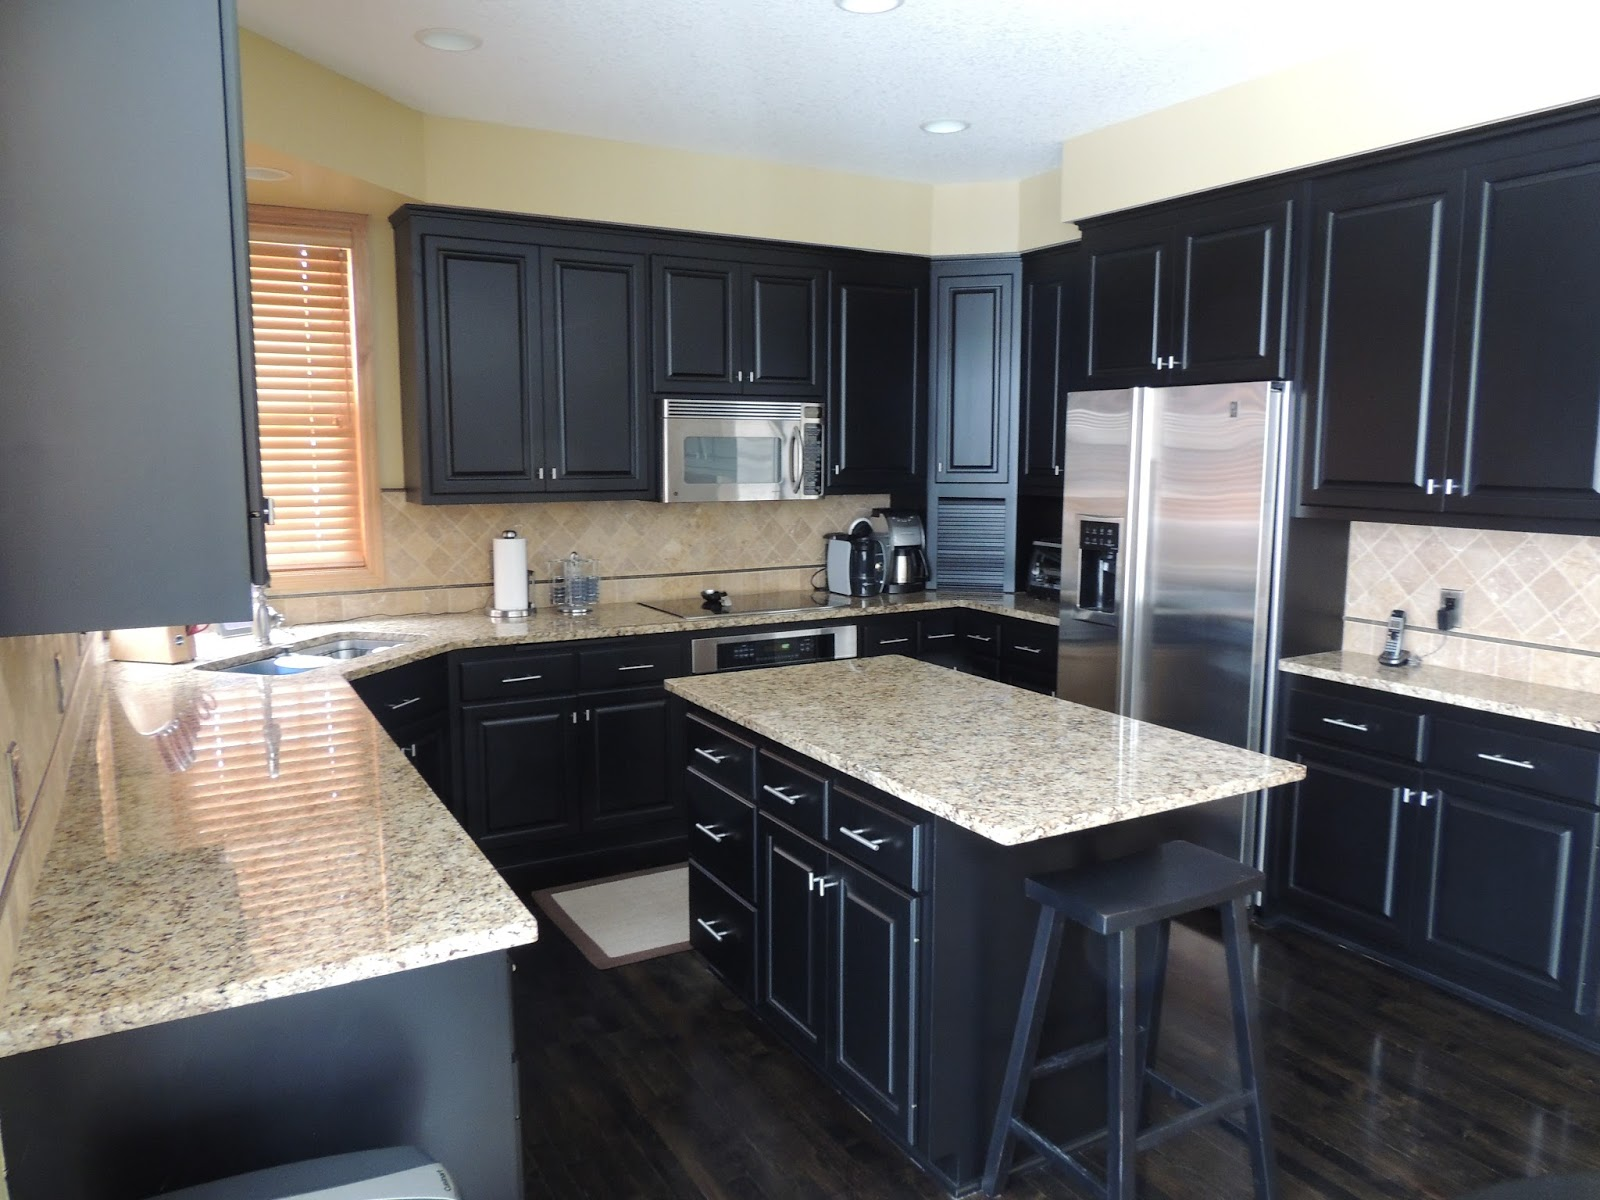 55 gambar meja dapur minimalis keramik granit kayu dll for Black and white painted kitchen cabinets